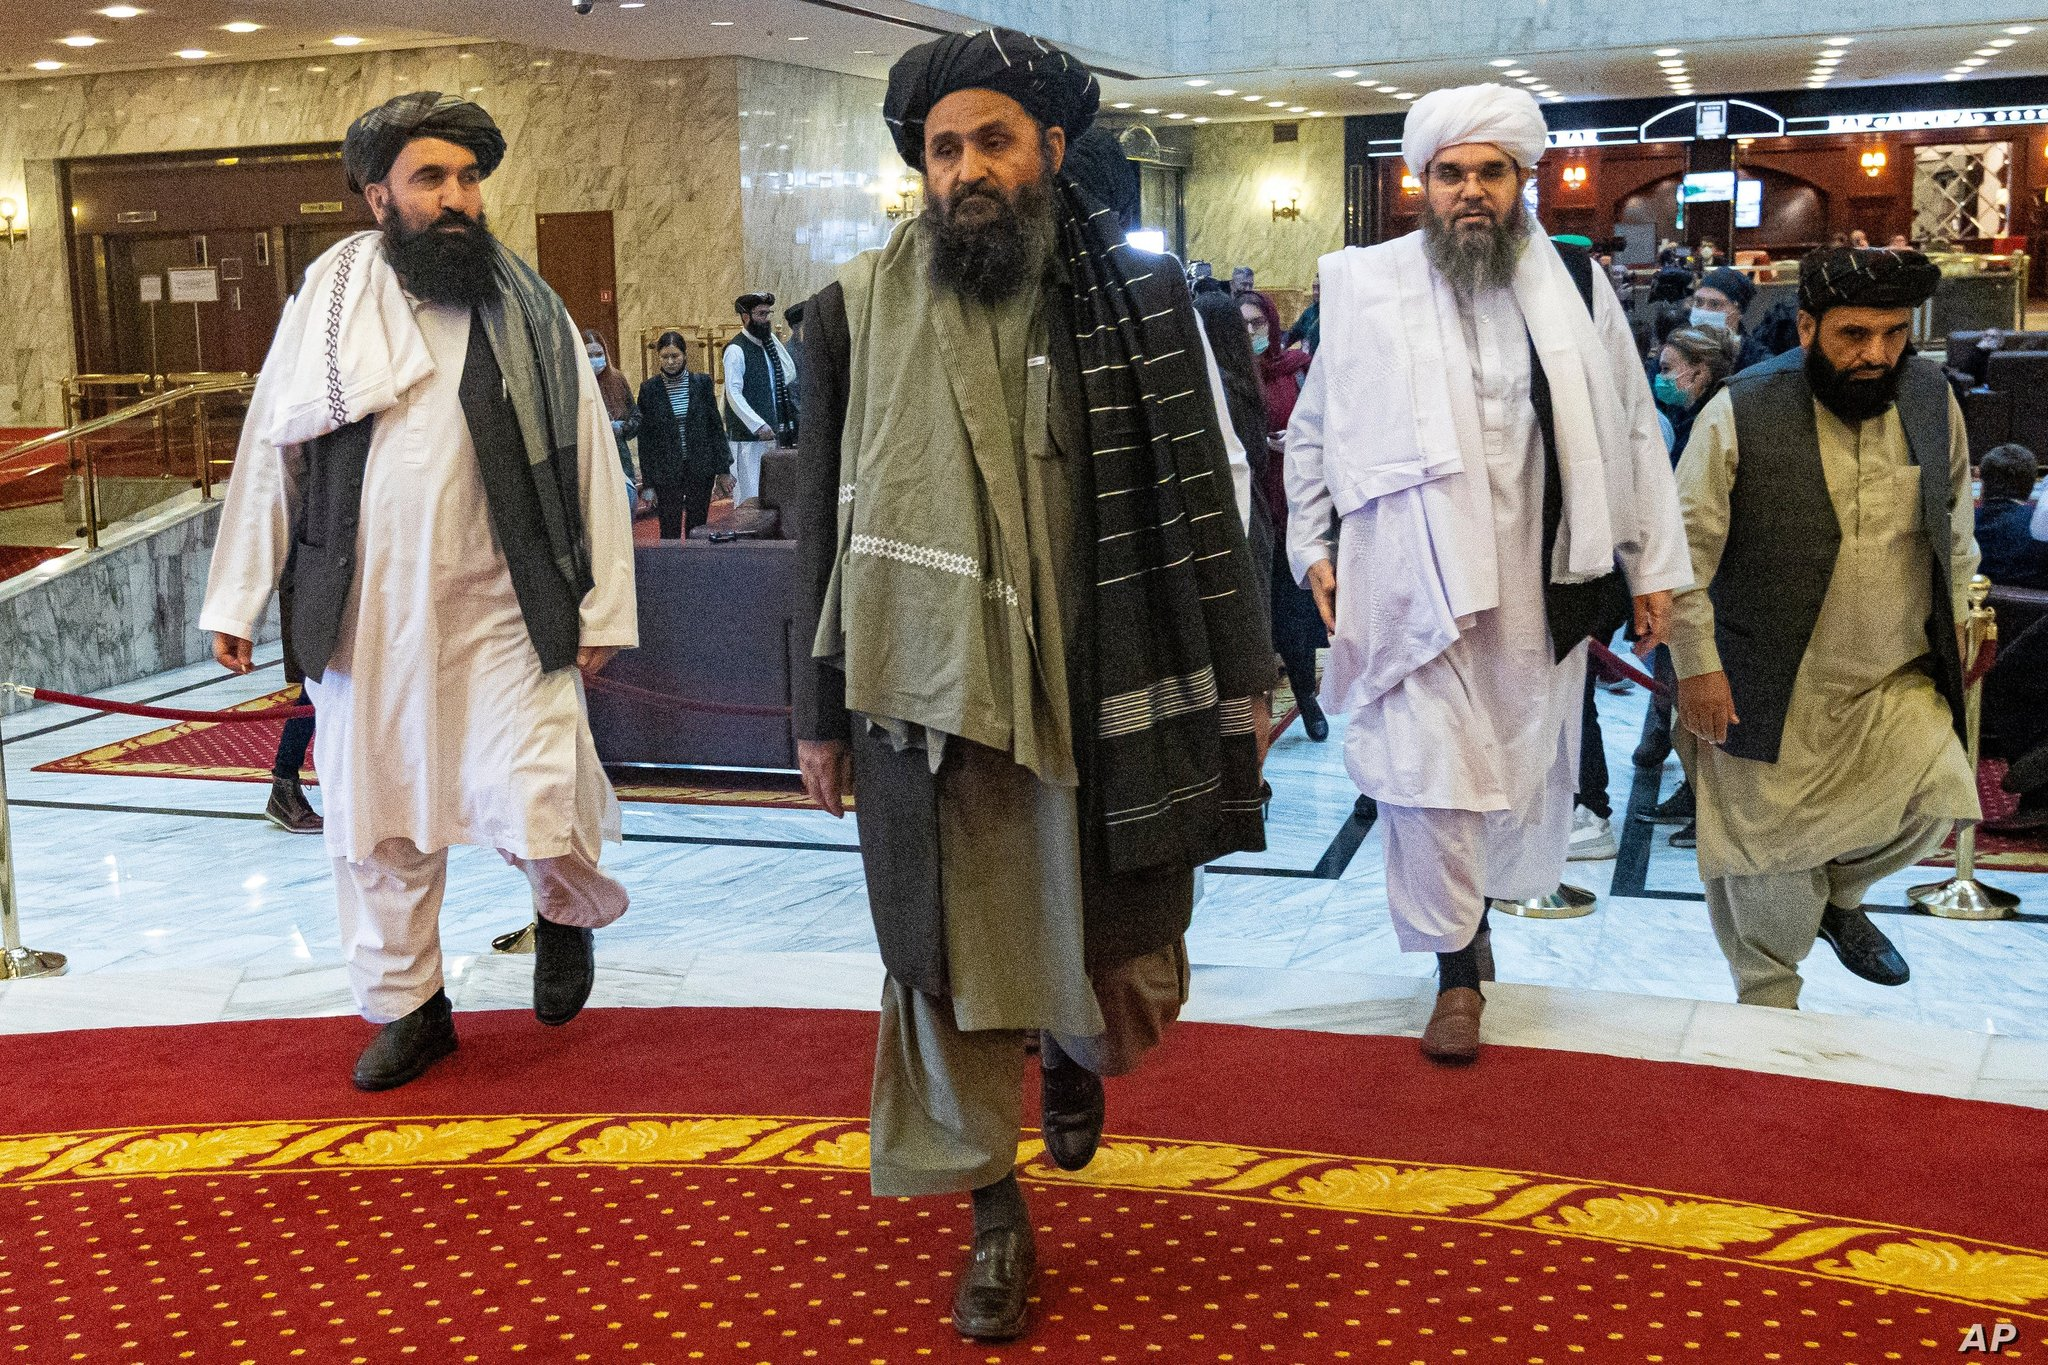 UPDATED: Taliban's Leader Came To Kabul To Get Power Over Afghanistan (Videos)